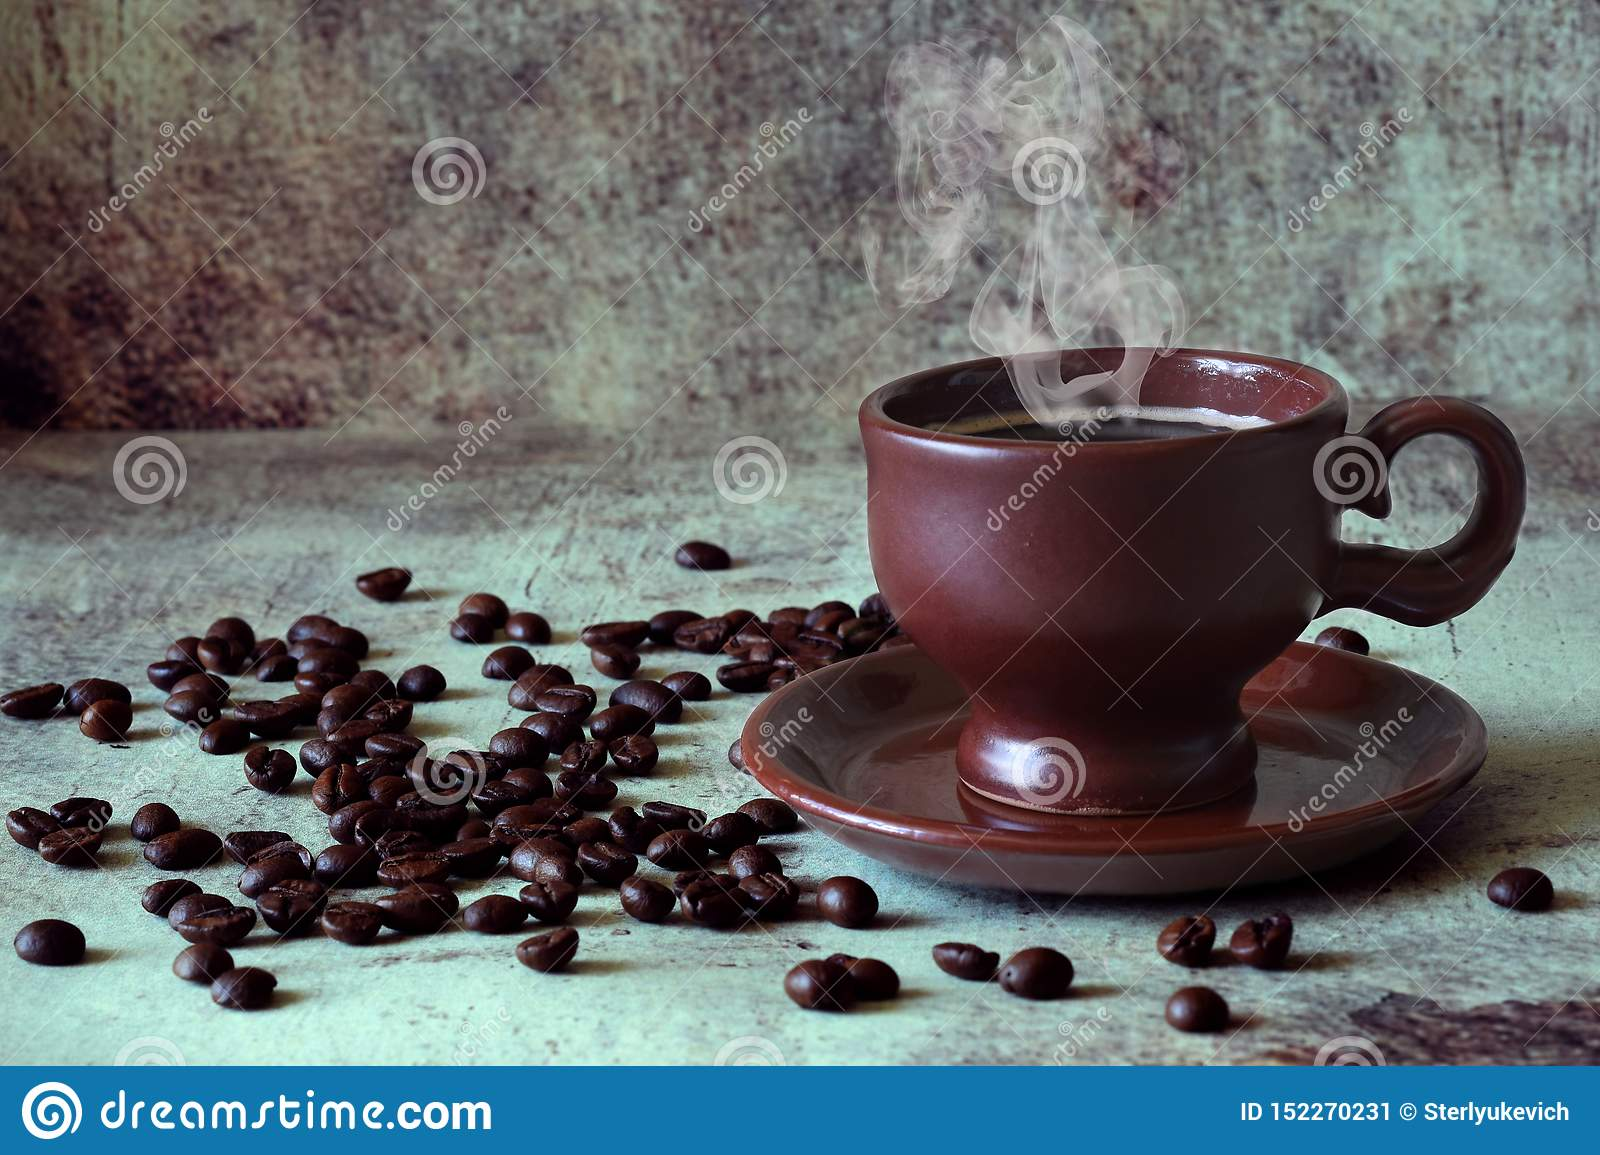 Fragrant hot coffee in a beautiful clay Cup among the scattered coffee beans